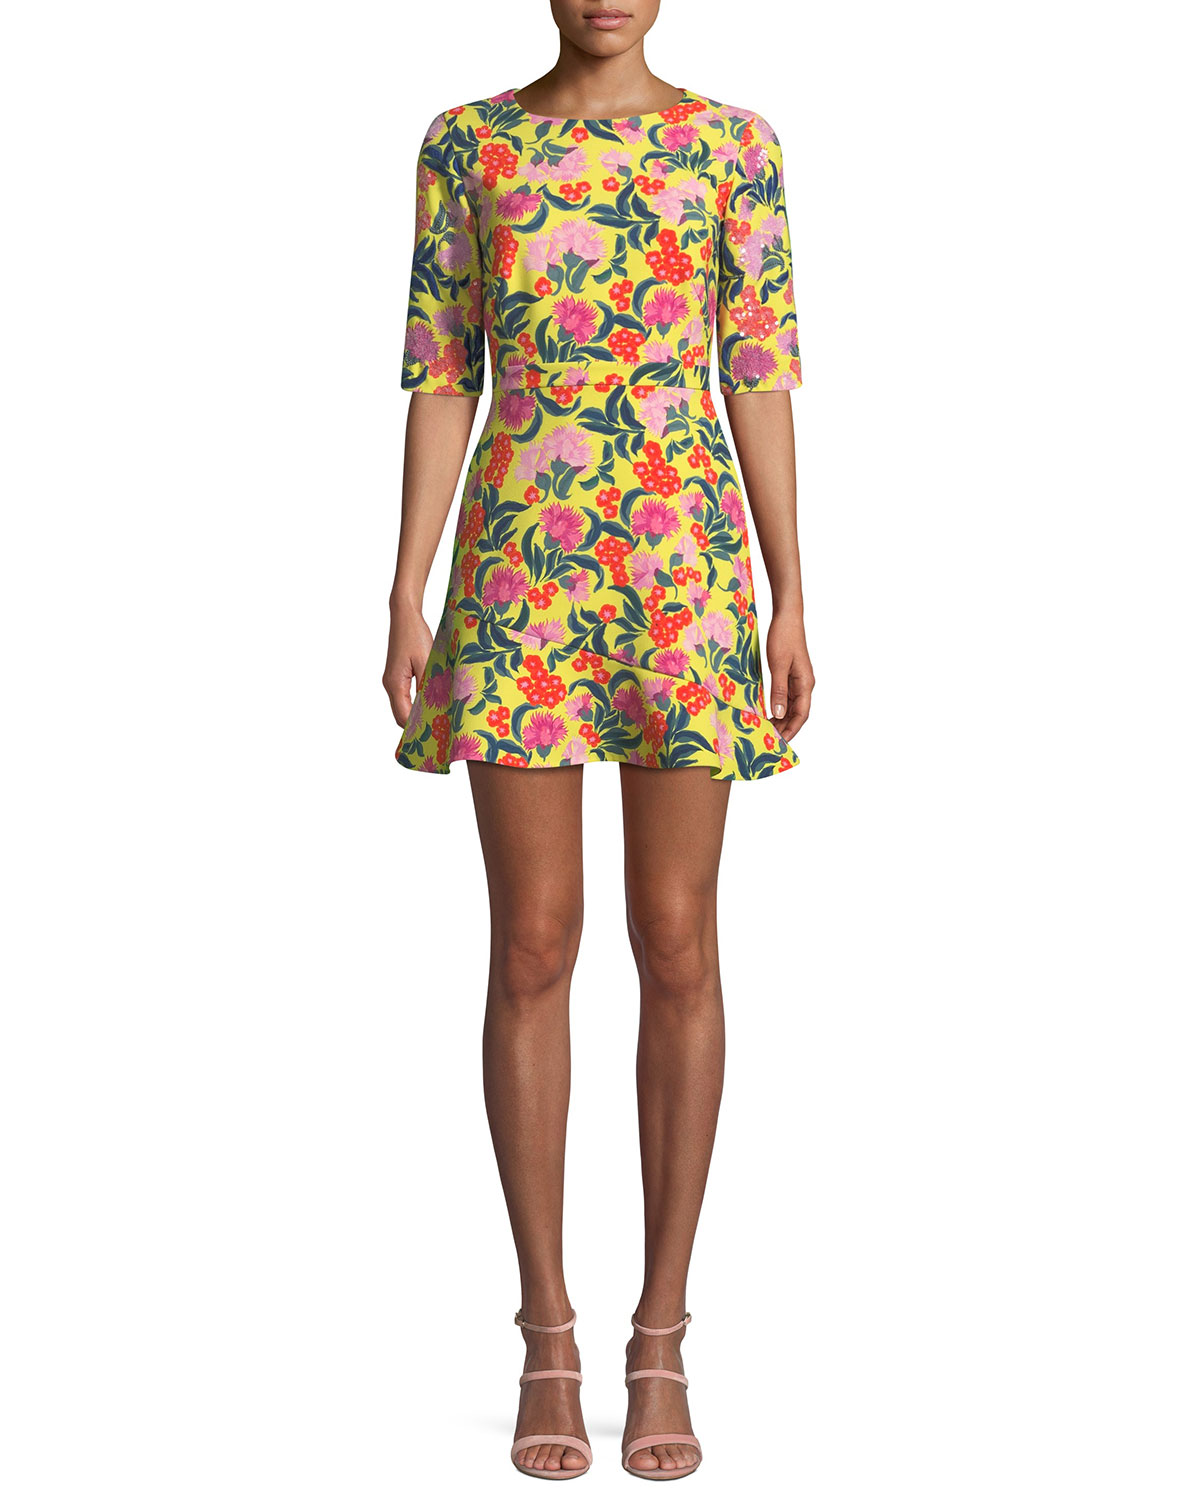 Celia-C Elbow-Sleeve Printed Mini Dress in Yellow Azalea/Azalea